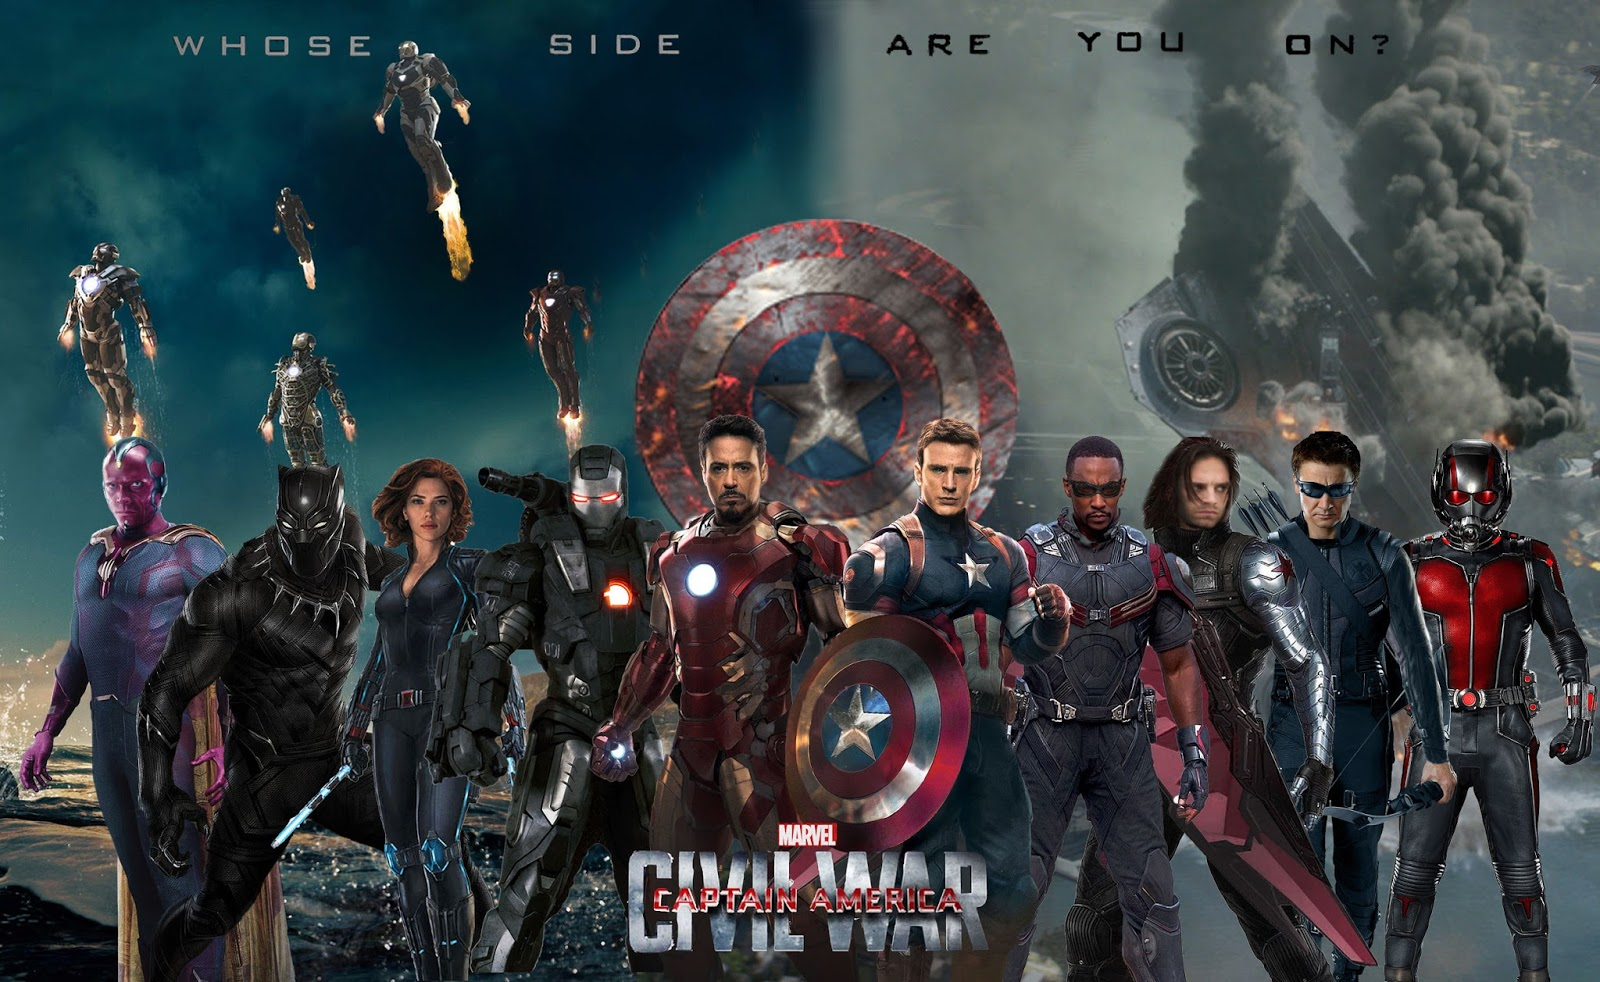 free new hd movie download: captain america civil war full movie